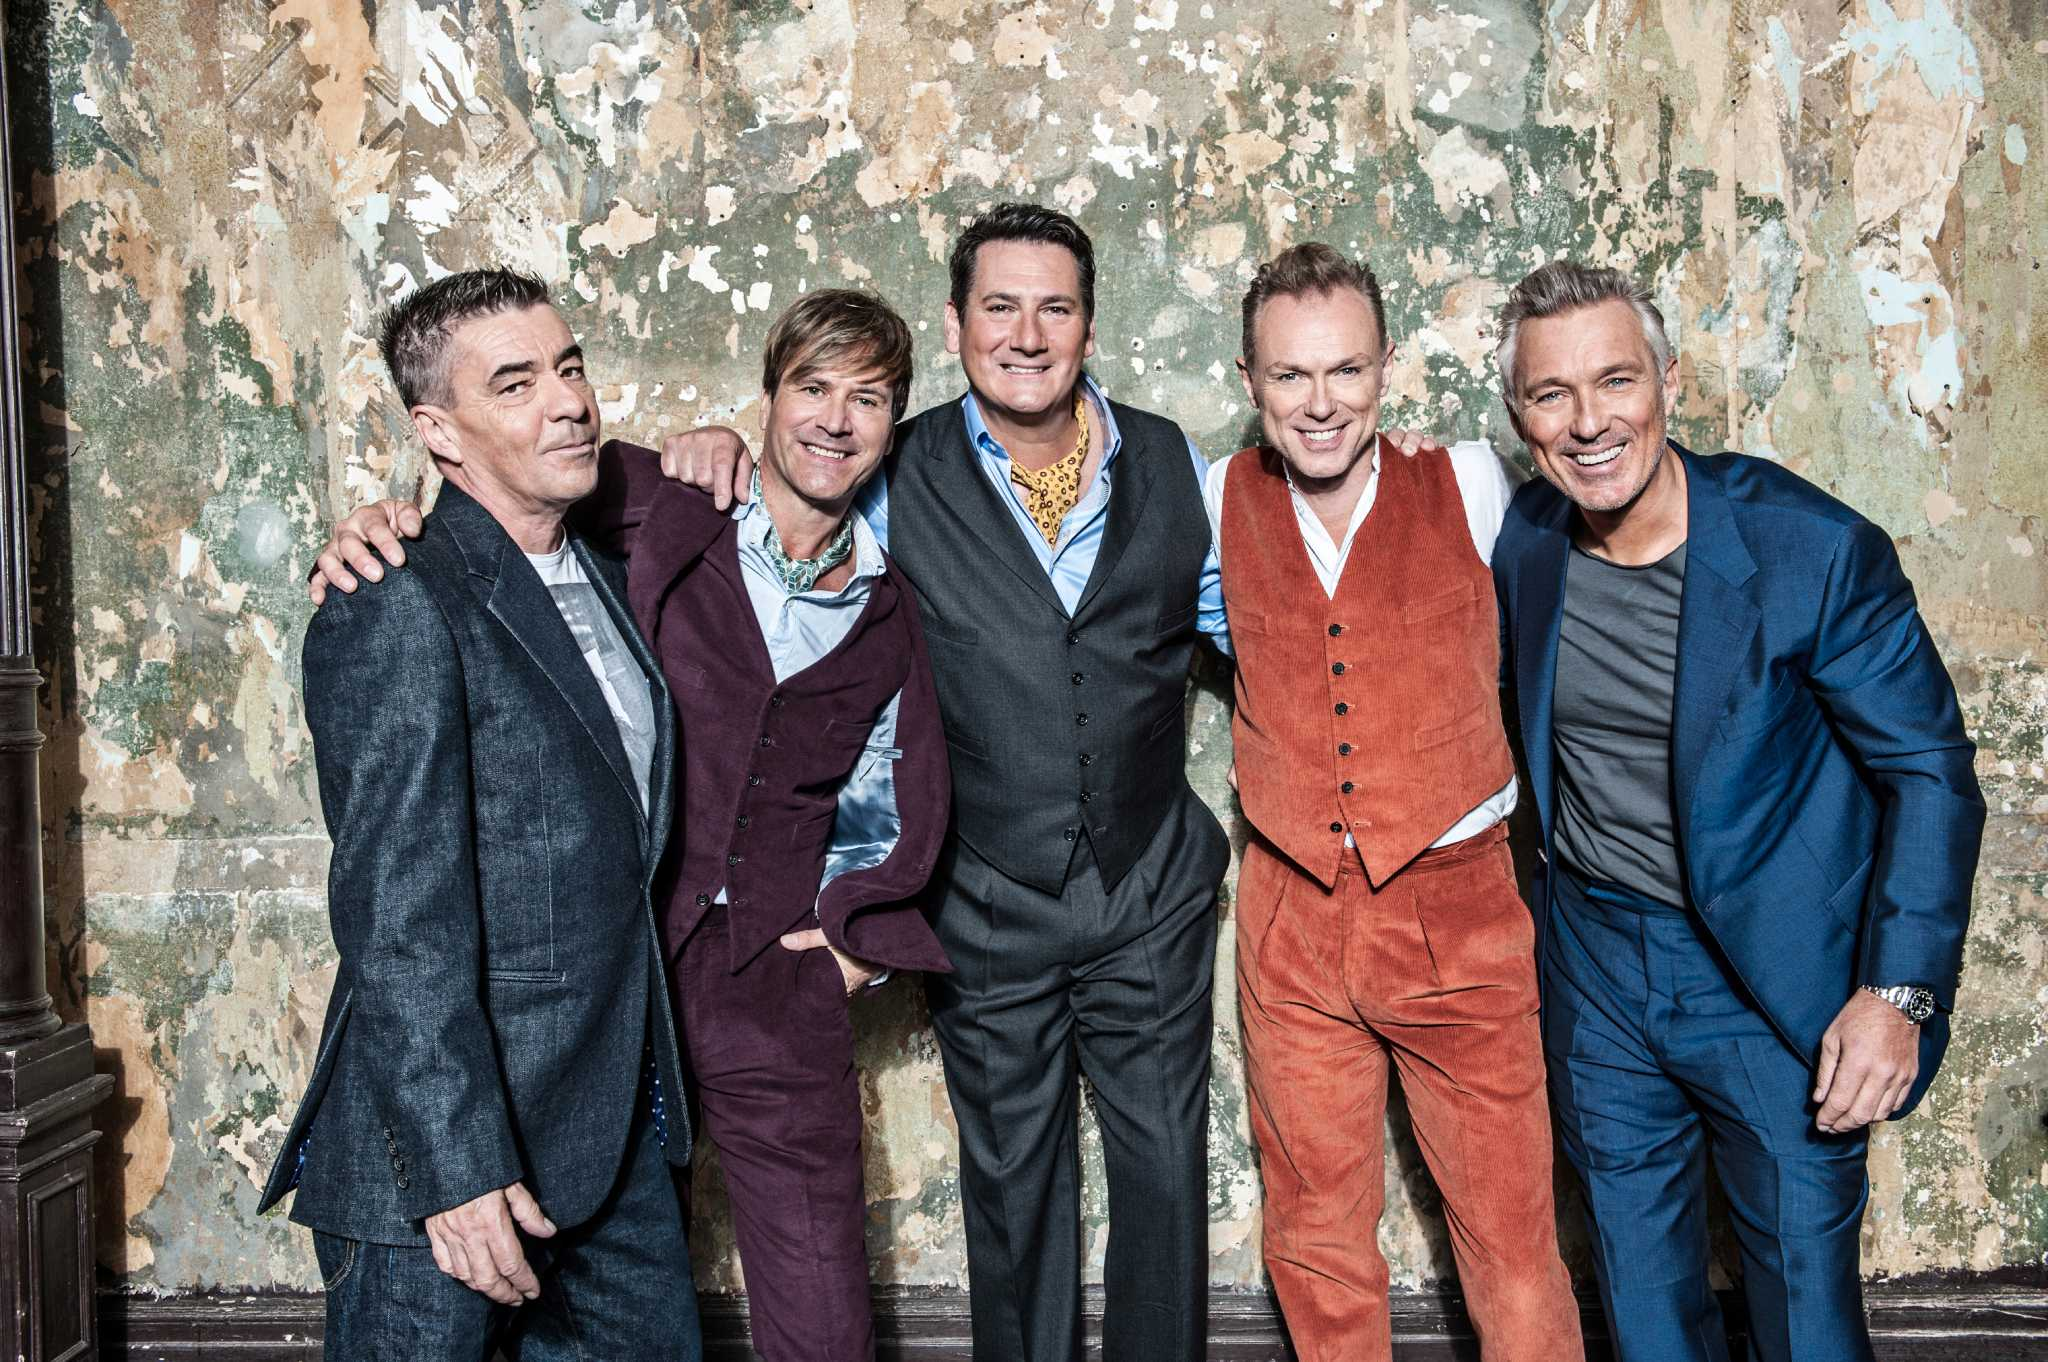 gary kemp tells how spandau ballet patched up differences sfgate. Black Bedroom Furniture Sets. Home Design Ideas